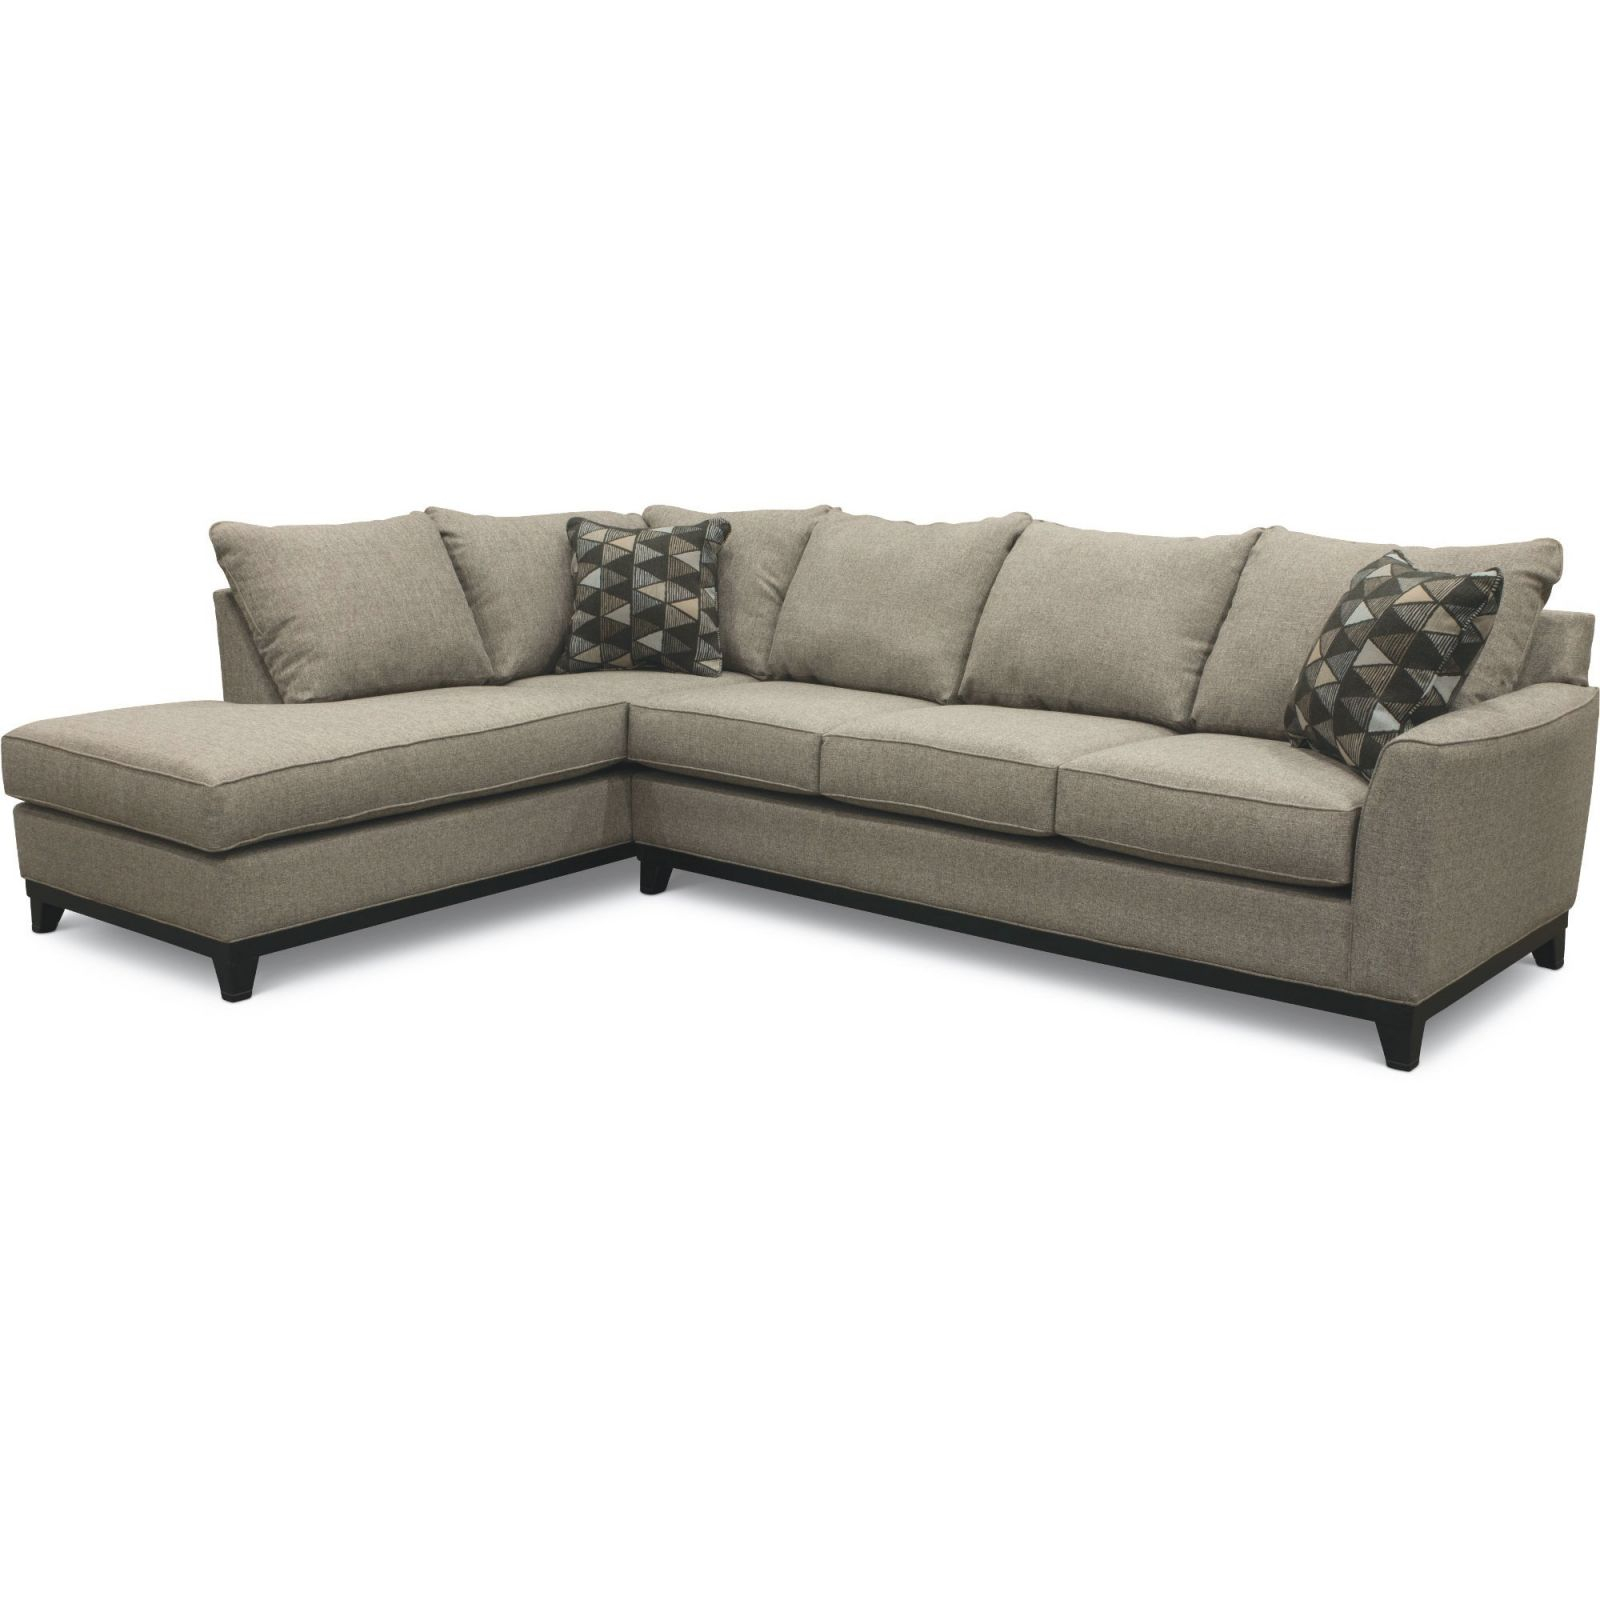 Slate Gray 2 Piece Sectional Sofa With Laf Chaise – Emerson with regard to Elegant 2 Piece Sectional With Chaise